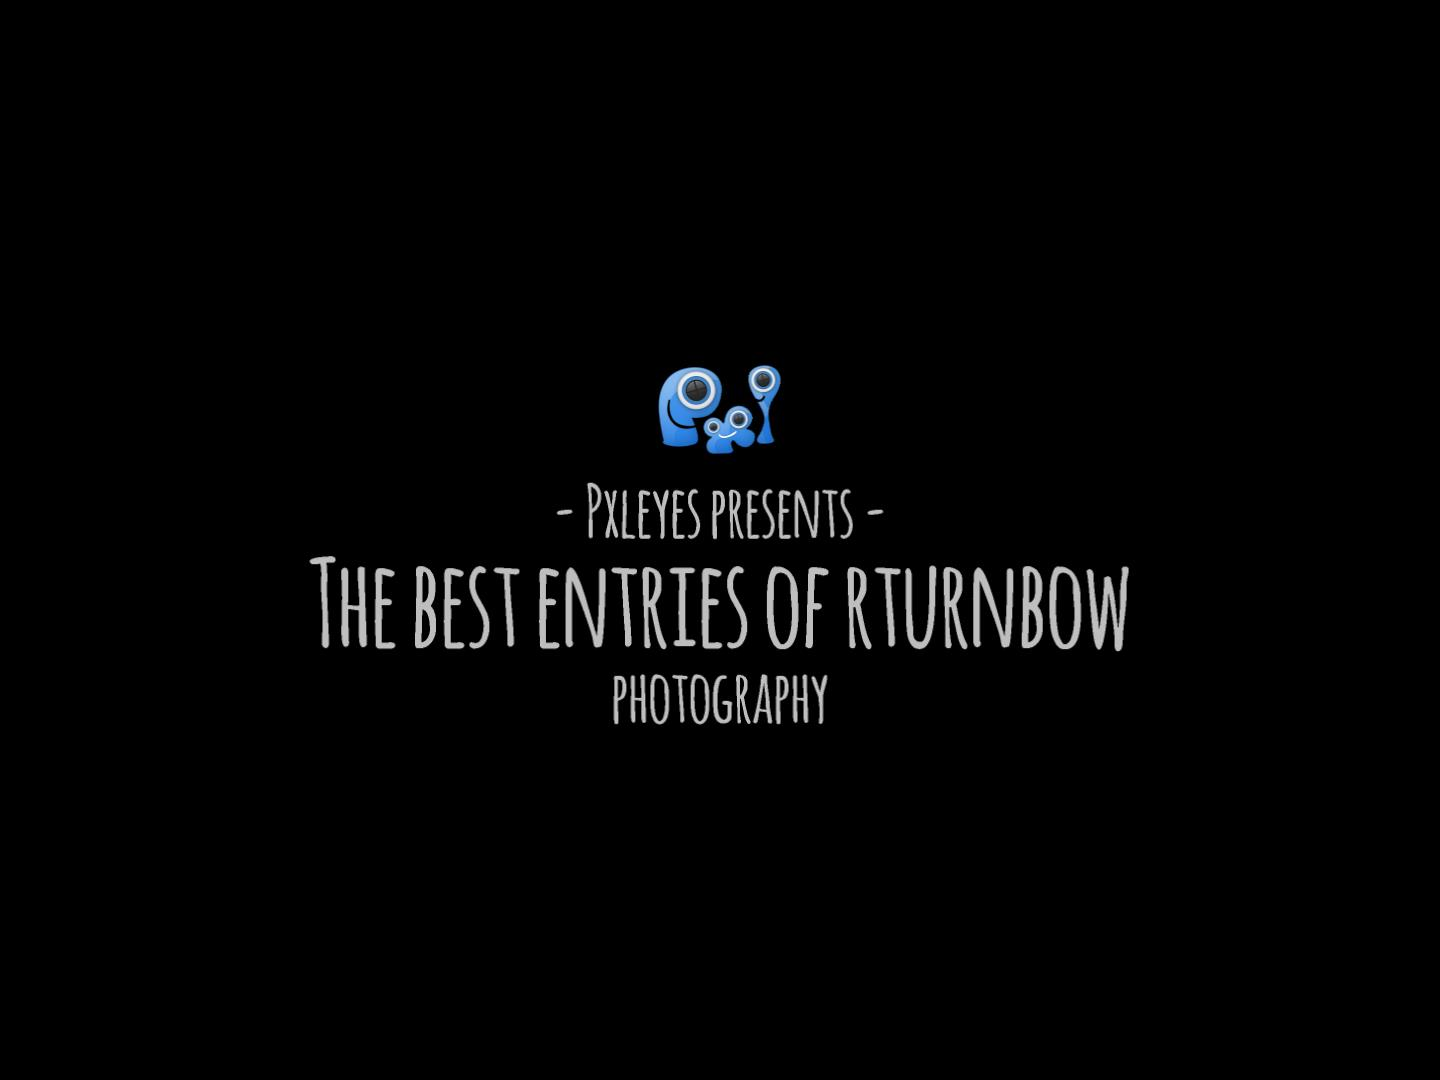 The best entries of rturnbow – photo